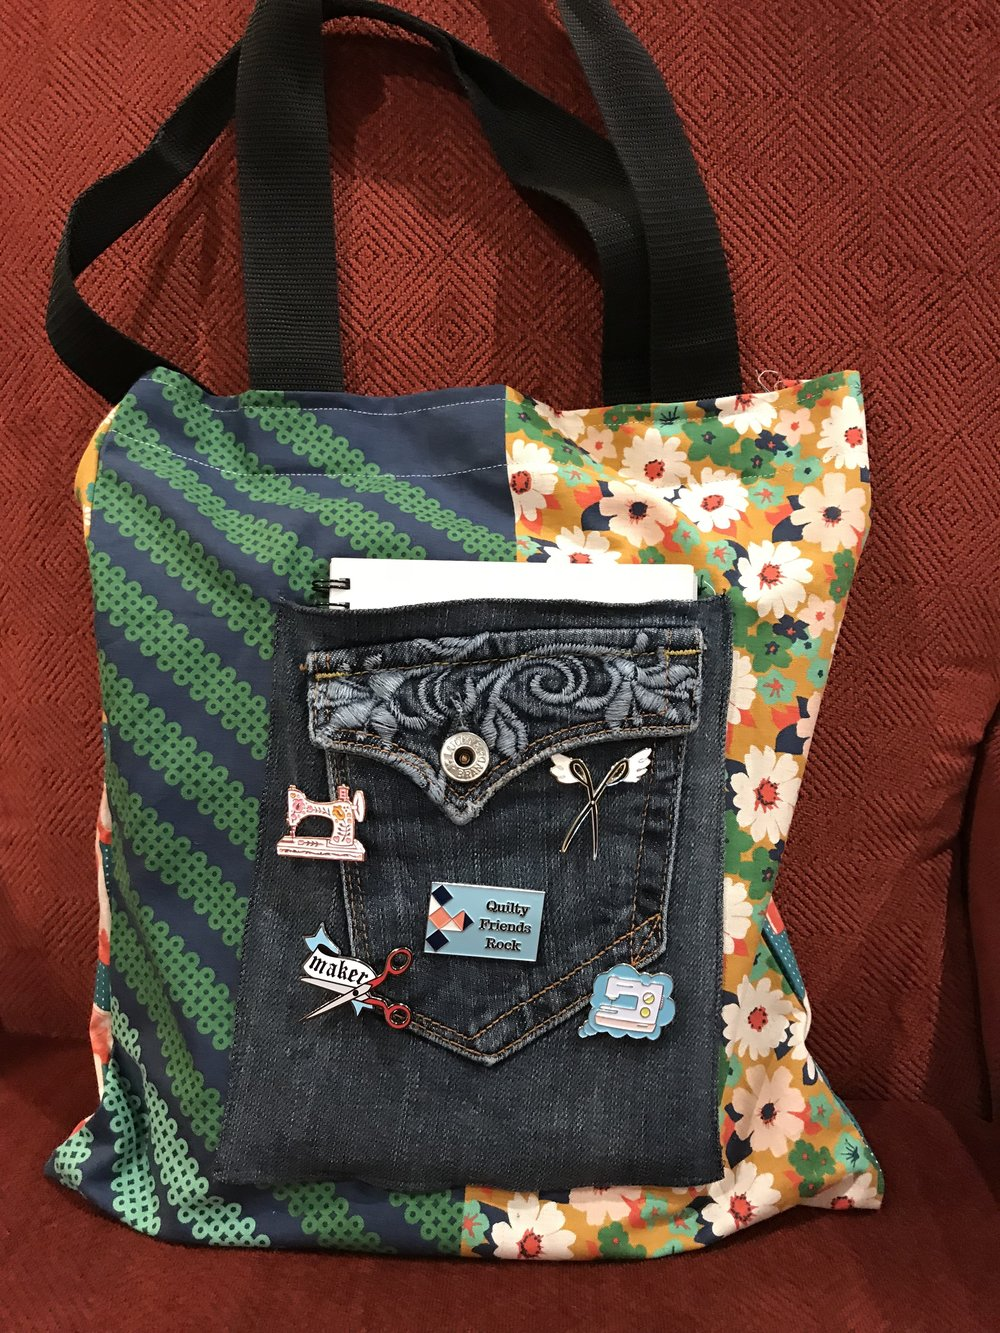 Jeans pocket on a tote bag